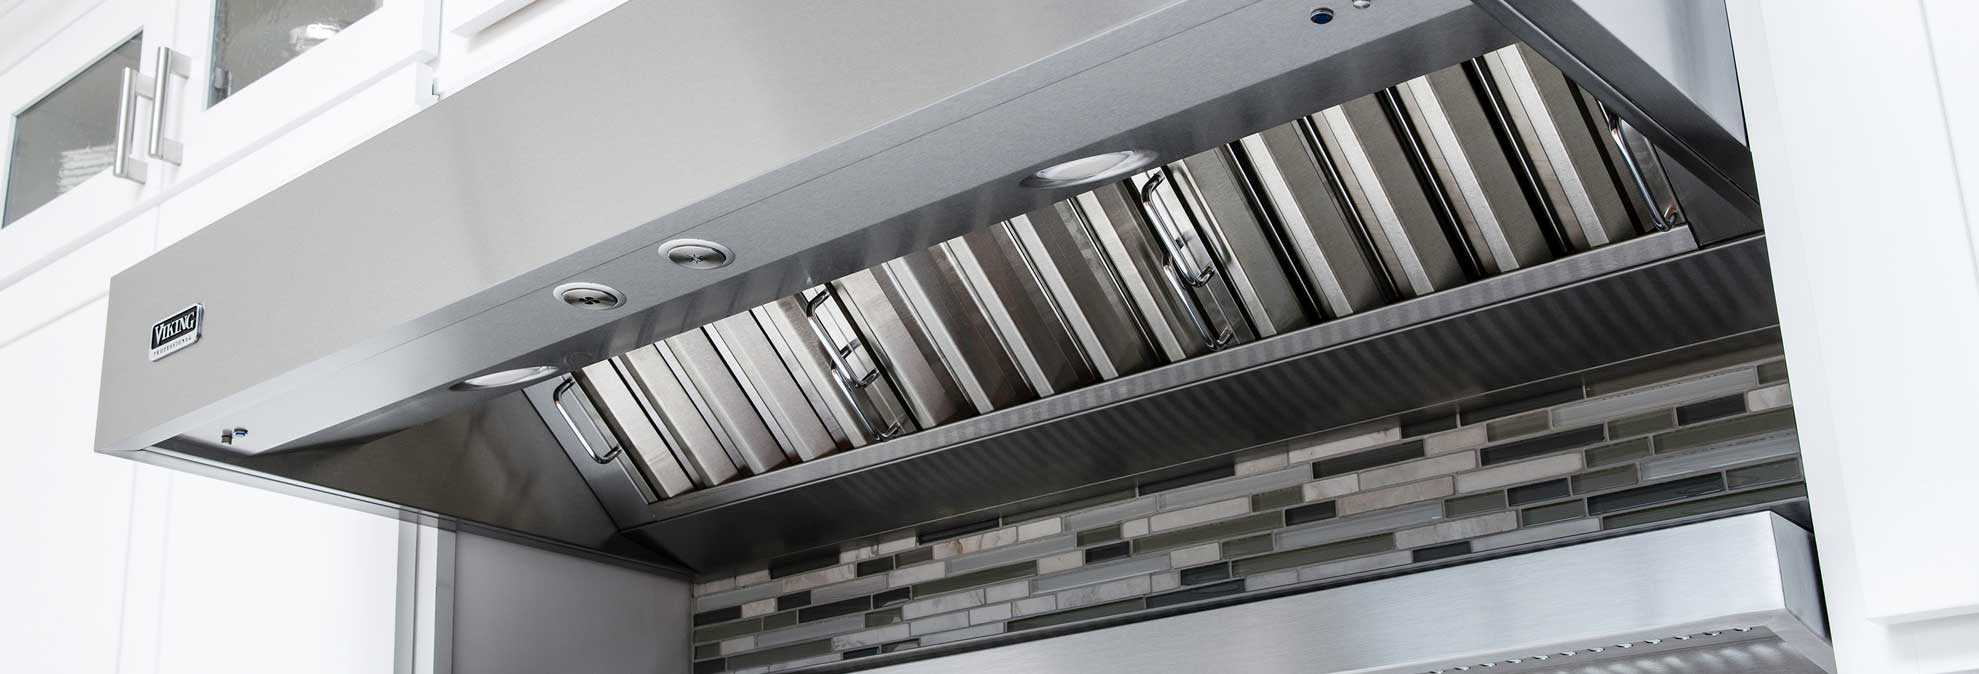 Used Car Batteries >> Best Range Hood Buying Guide - Consumer Reports